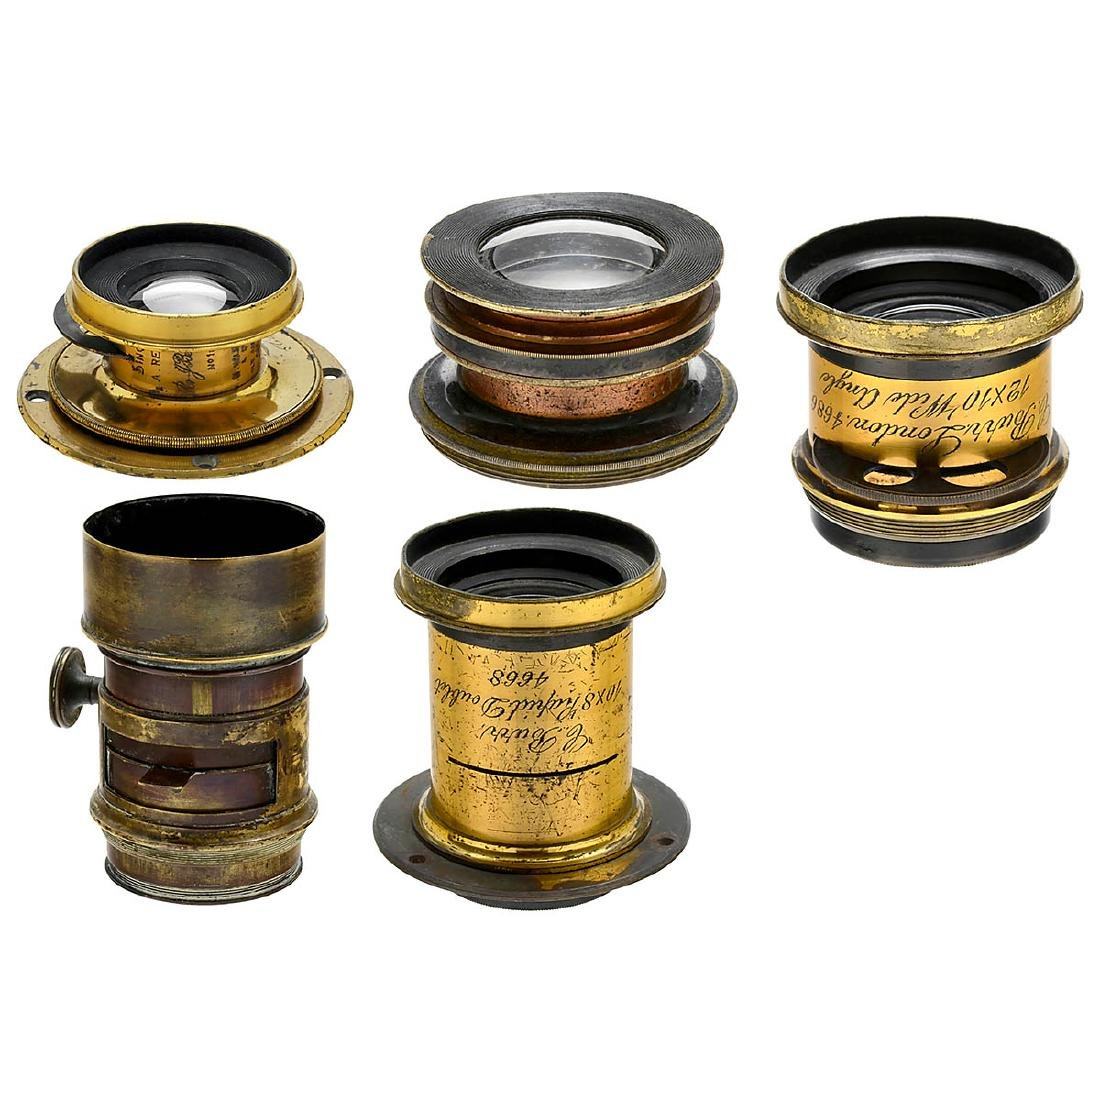 5 Brass Lenses from England